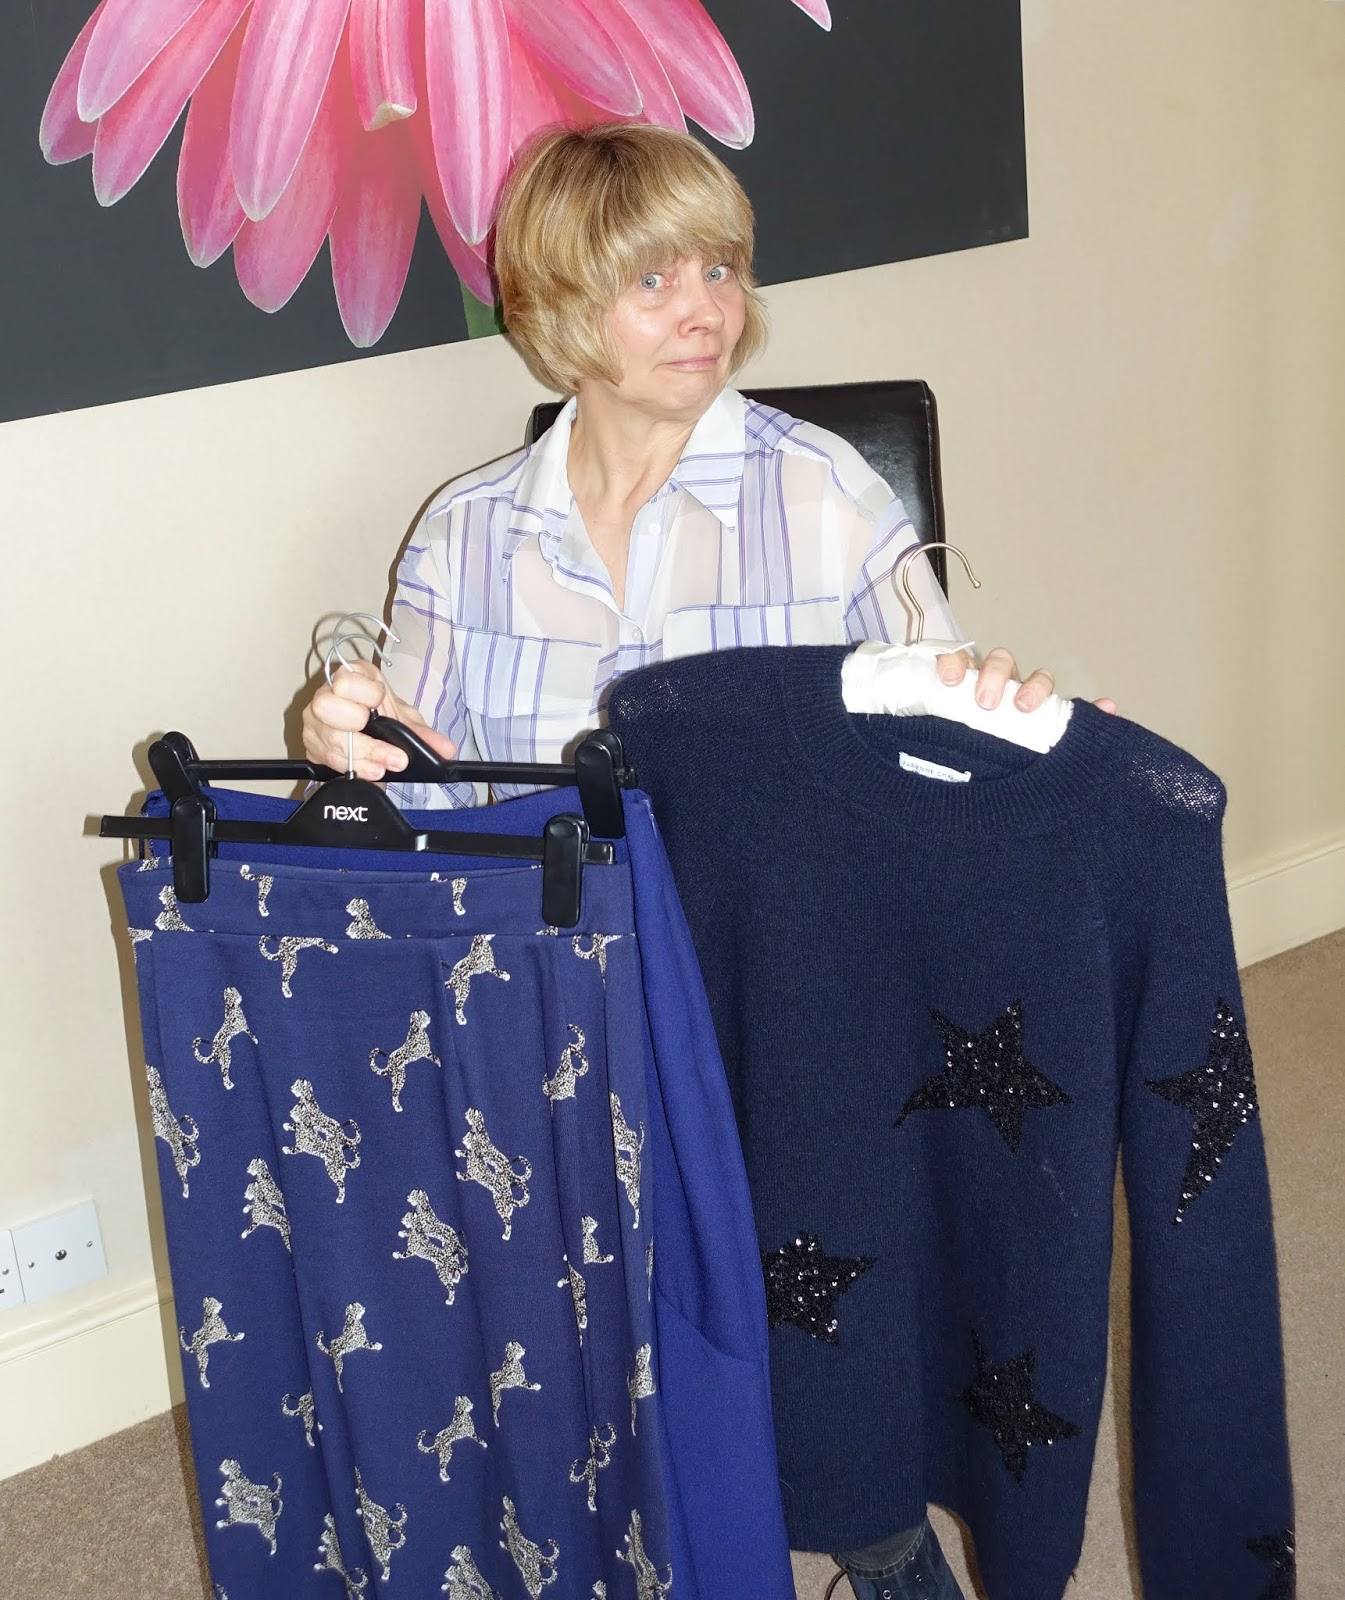 Over 45s style blog Is This Mutton? on a dilemma with the colour blue